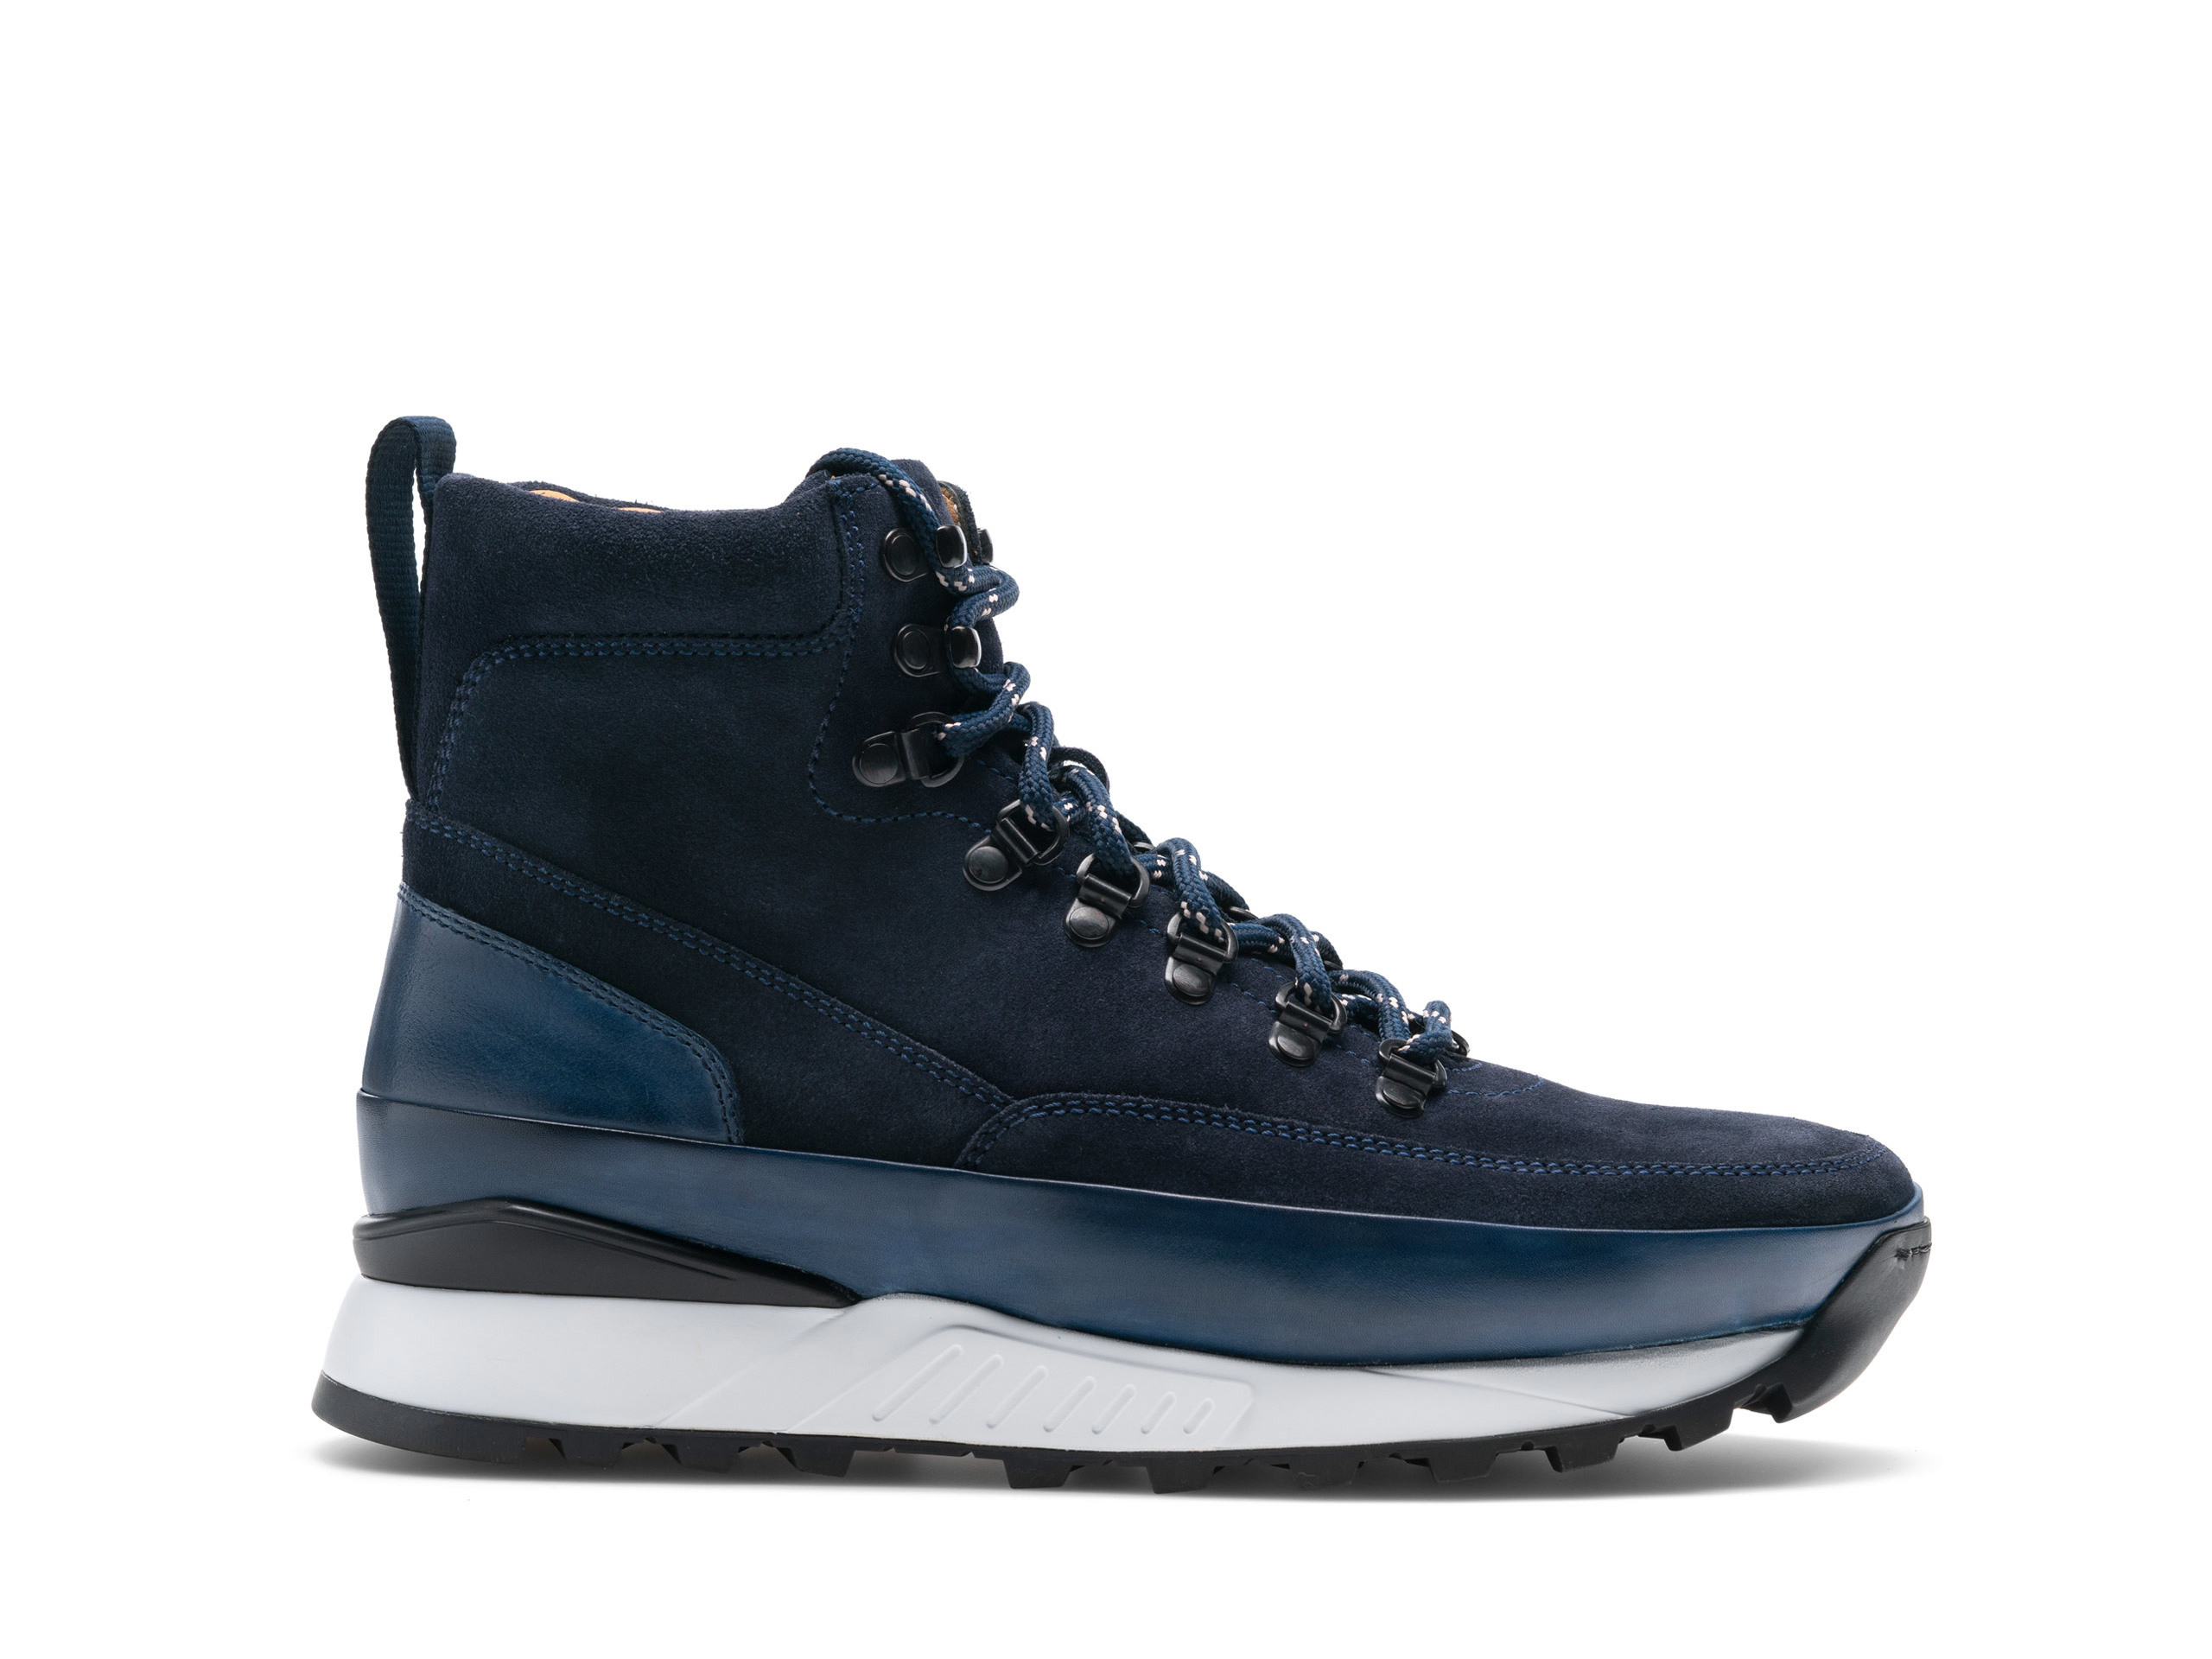 Side view of the Magnanni Bodhi II Navy Suede Men's Casual Boots